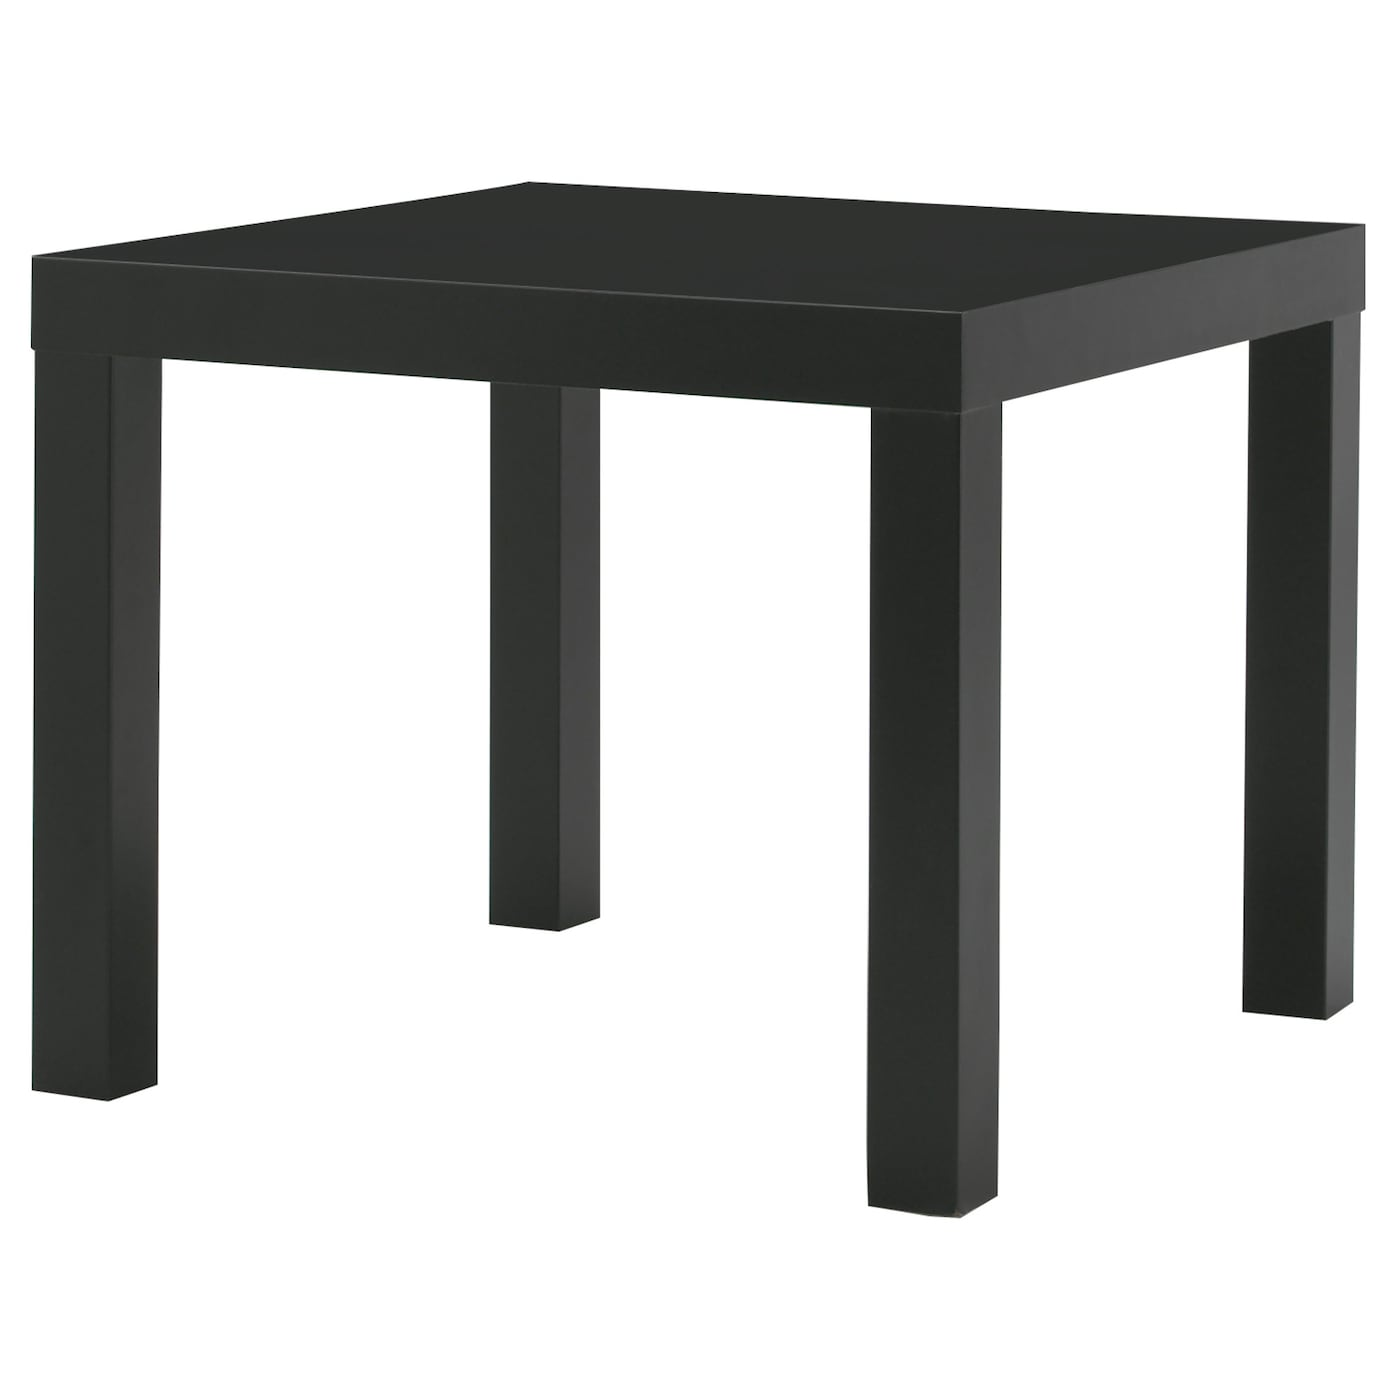 tables de salon design originales en verre en bois ikea. Black Bedroom Furniture Sets. Home Design Ideas